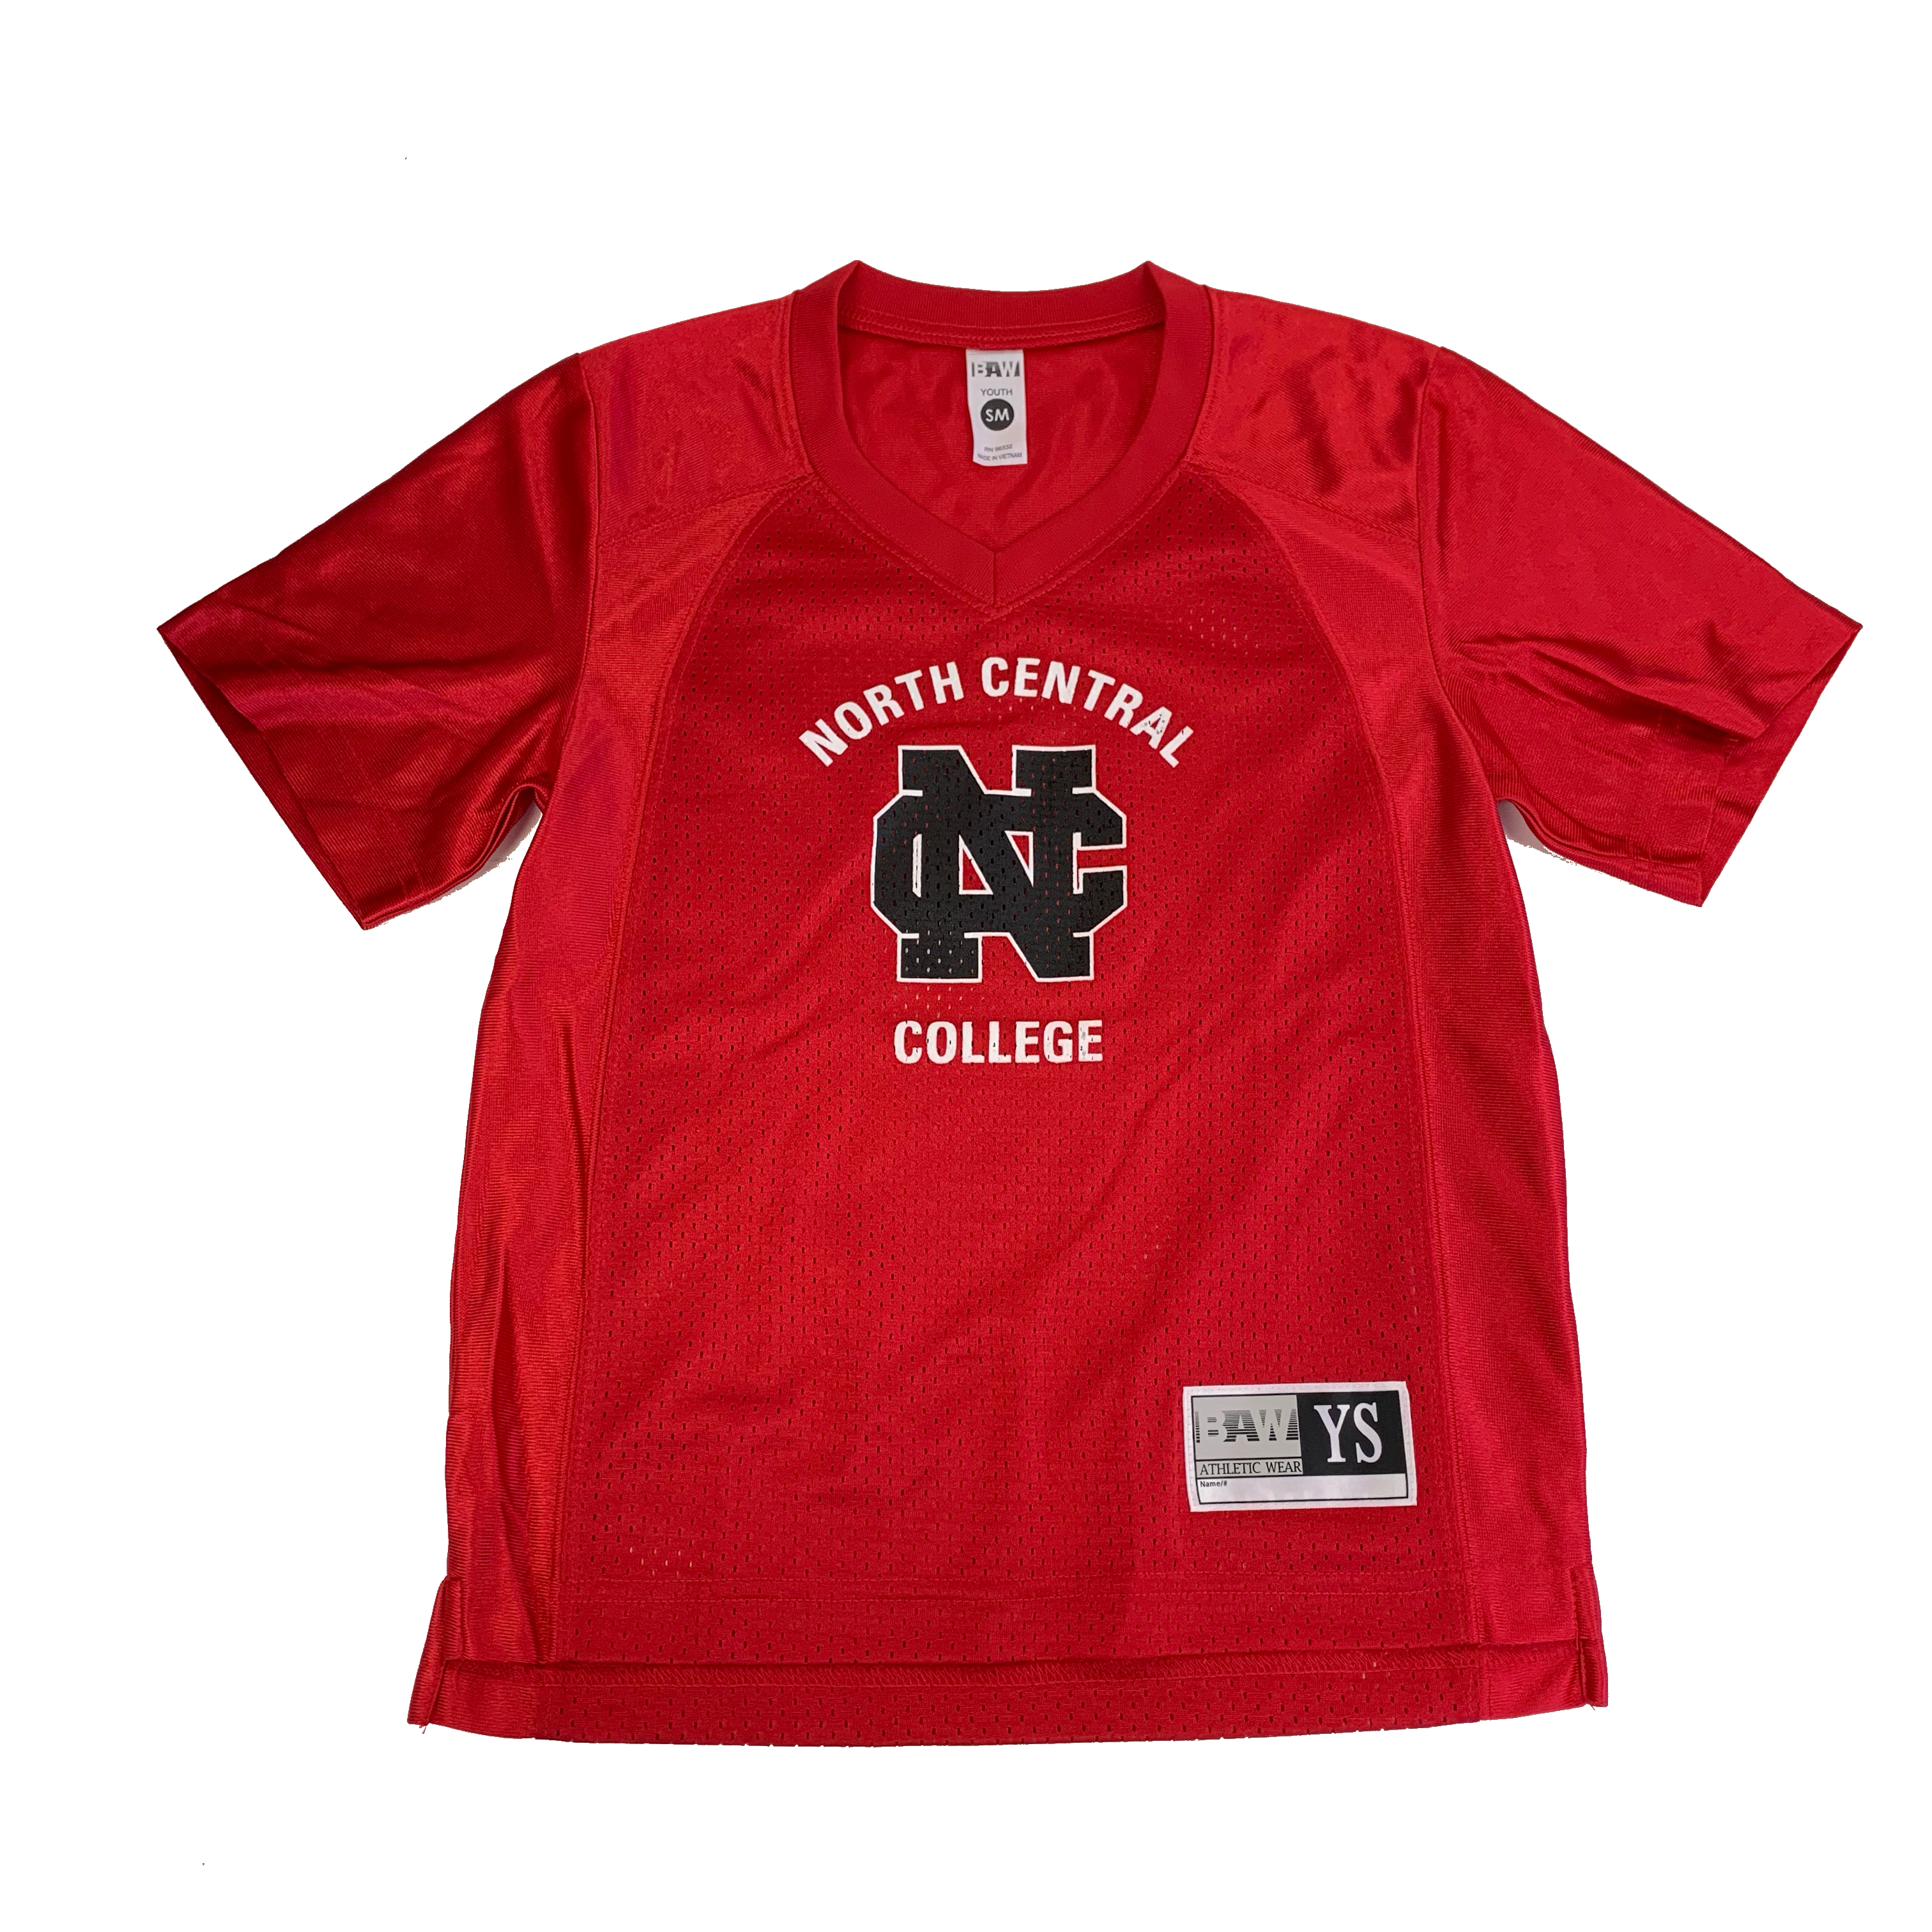 Image for the Youth Fan Jersey product